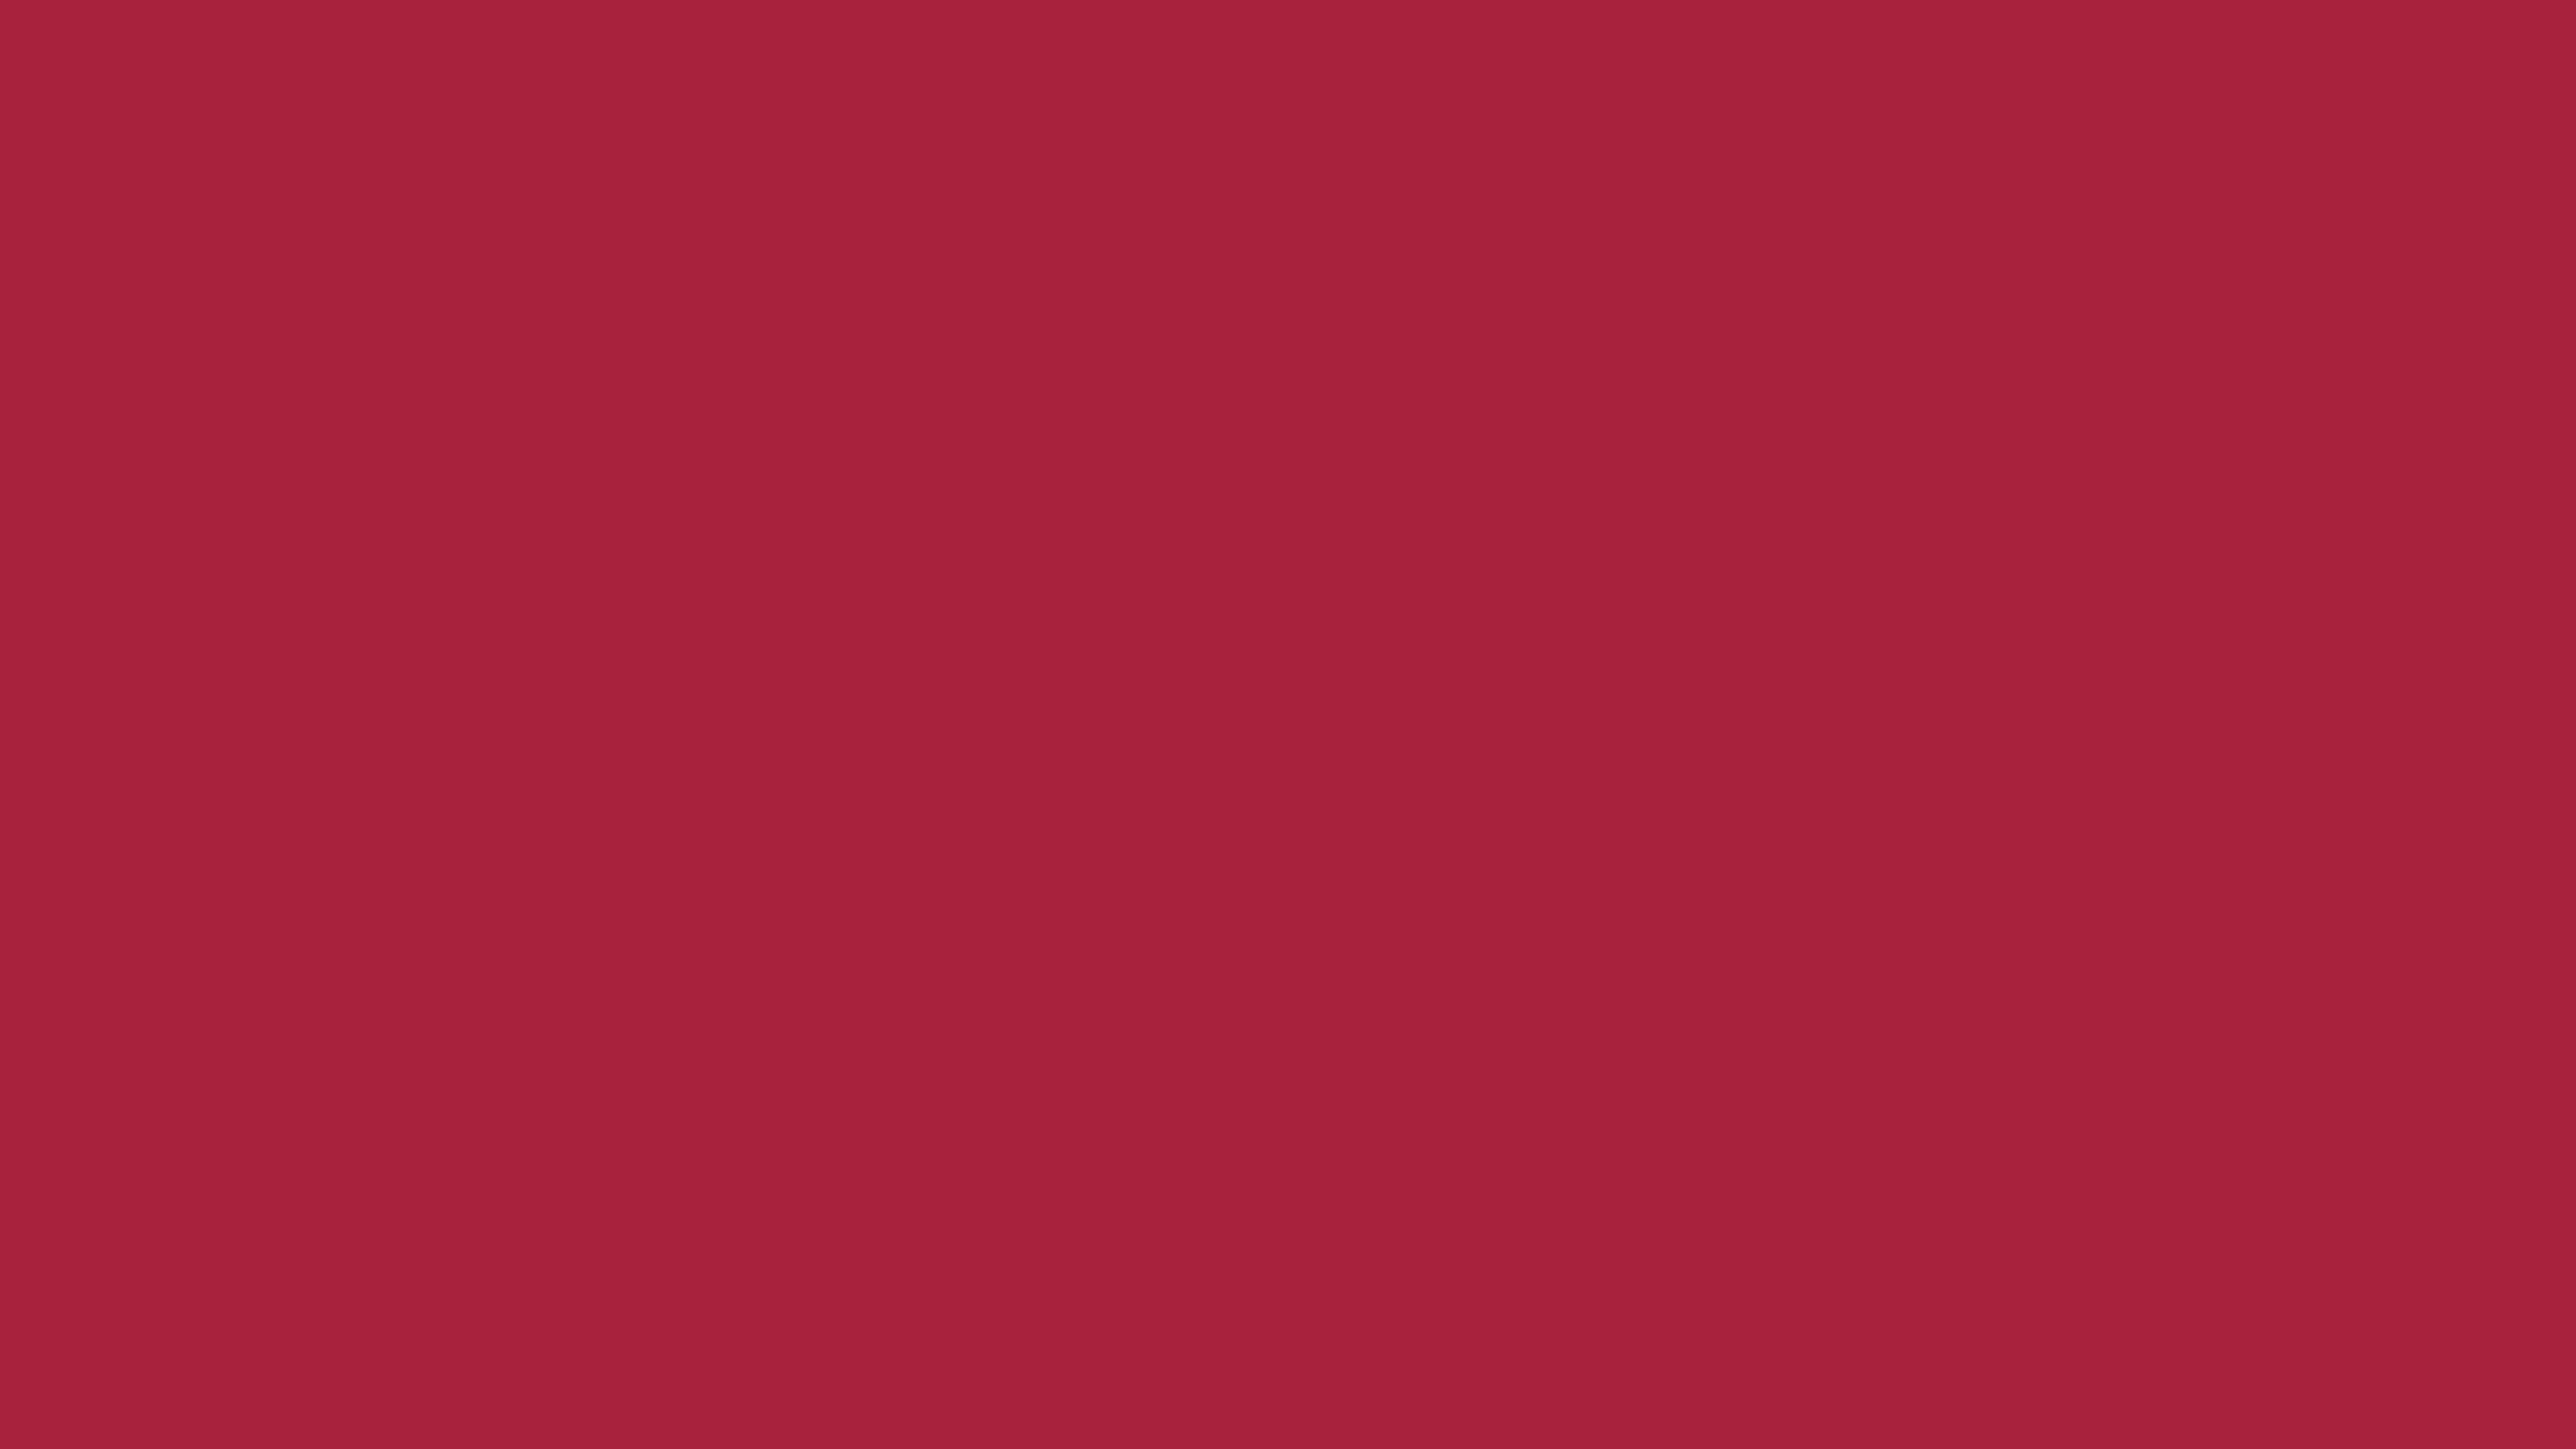 5120x2880 Deep Carmine Solid Color Background